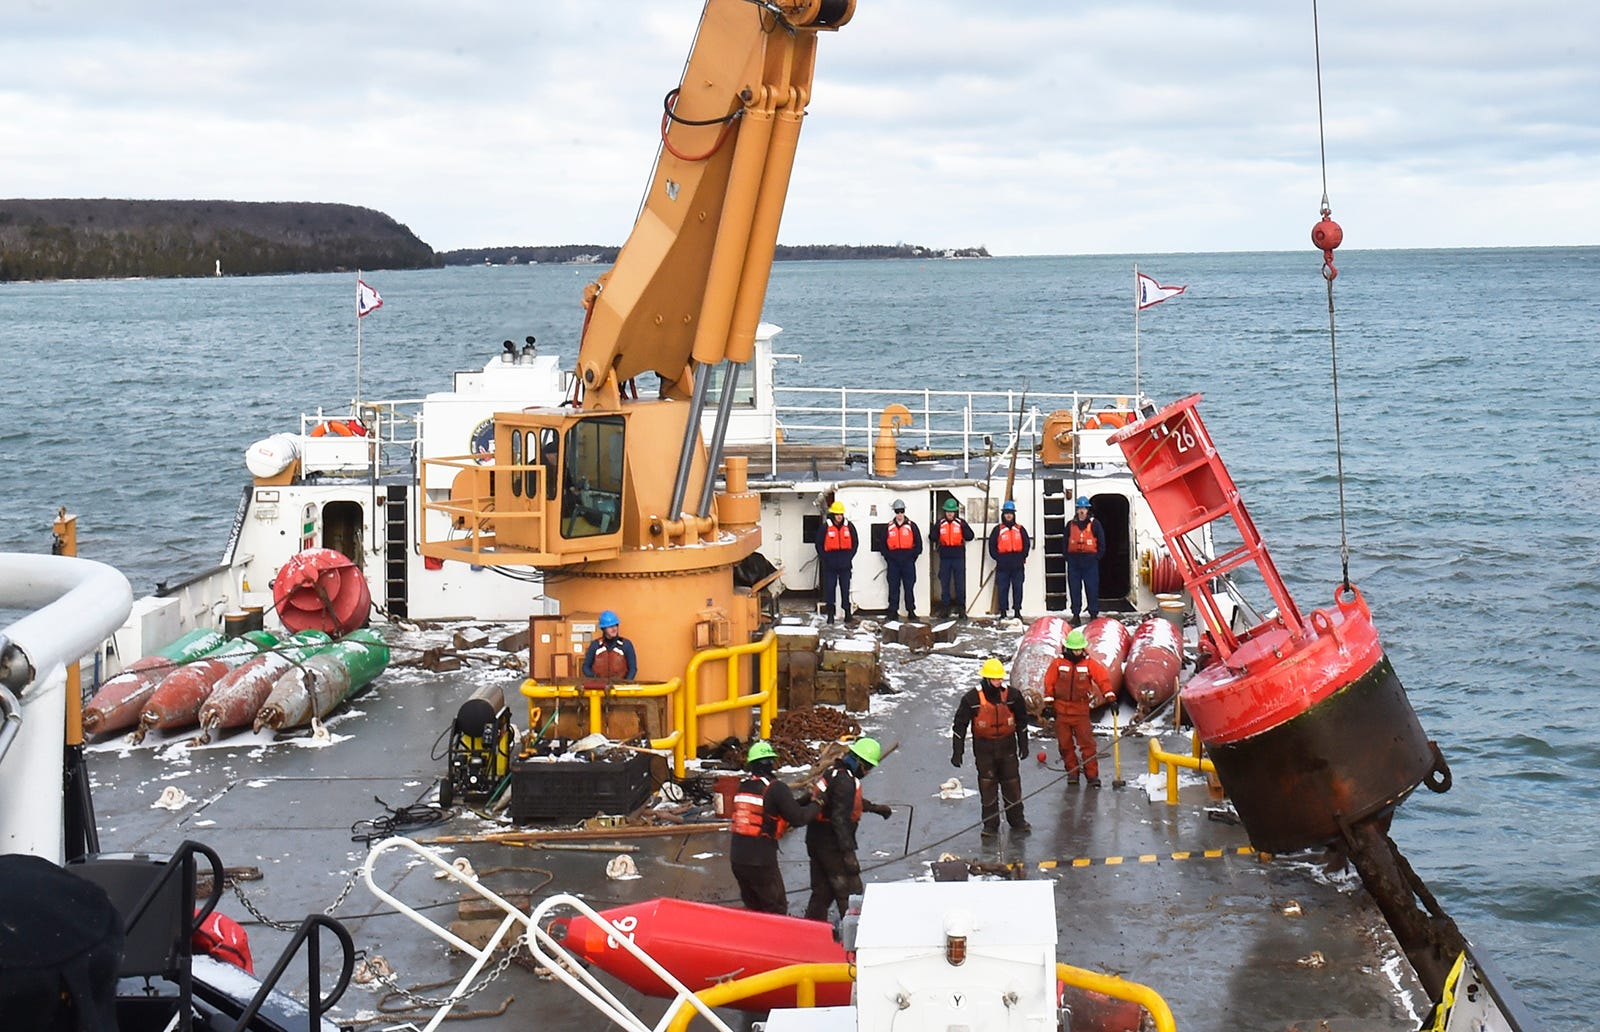 Good The United States Coast Guard Cutter Mobile Bay lifted